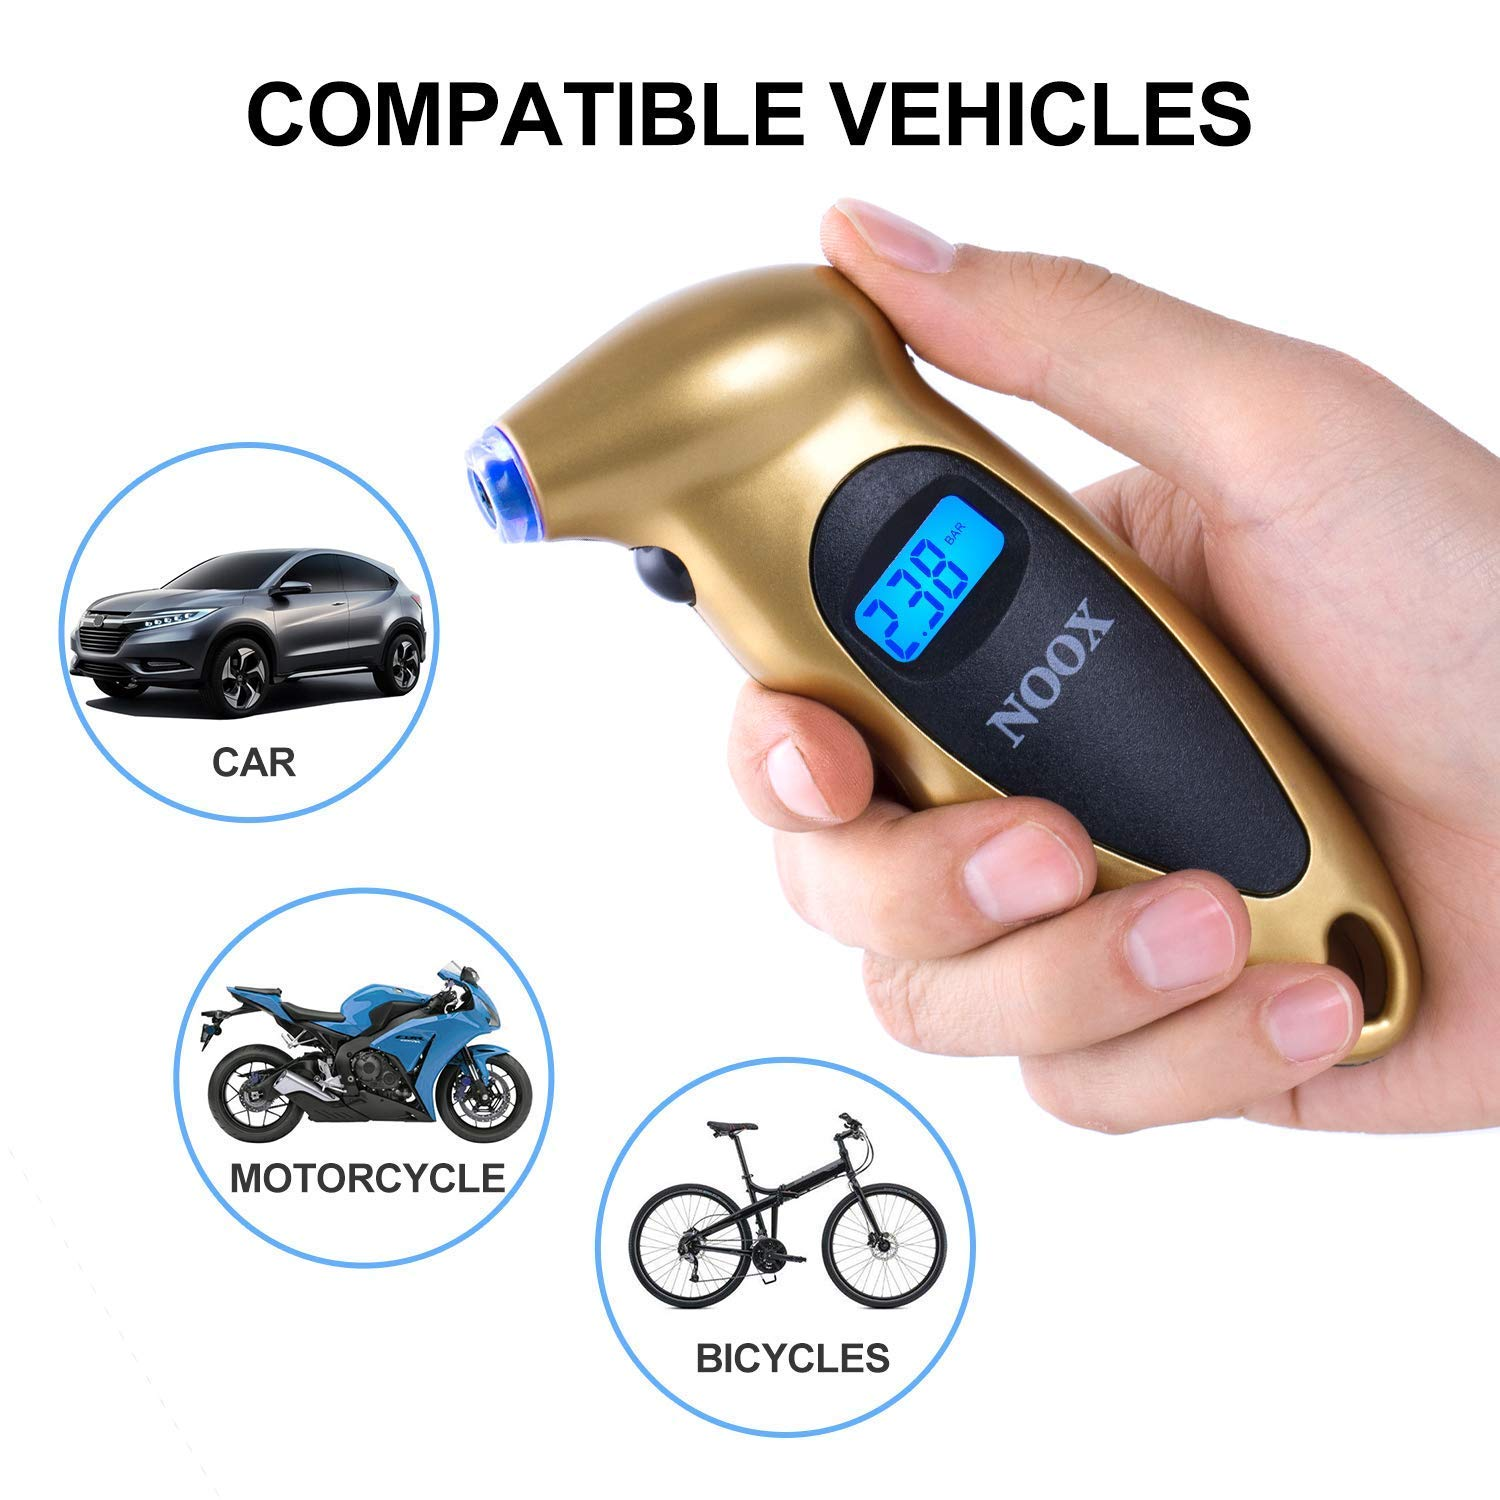 Gold NOOX Accurate Digital Tire Pressure Gauge for Car Truck Motocycle Bicycle Jeep Sedan Limousine Wagon Tires 150 PSI